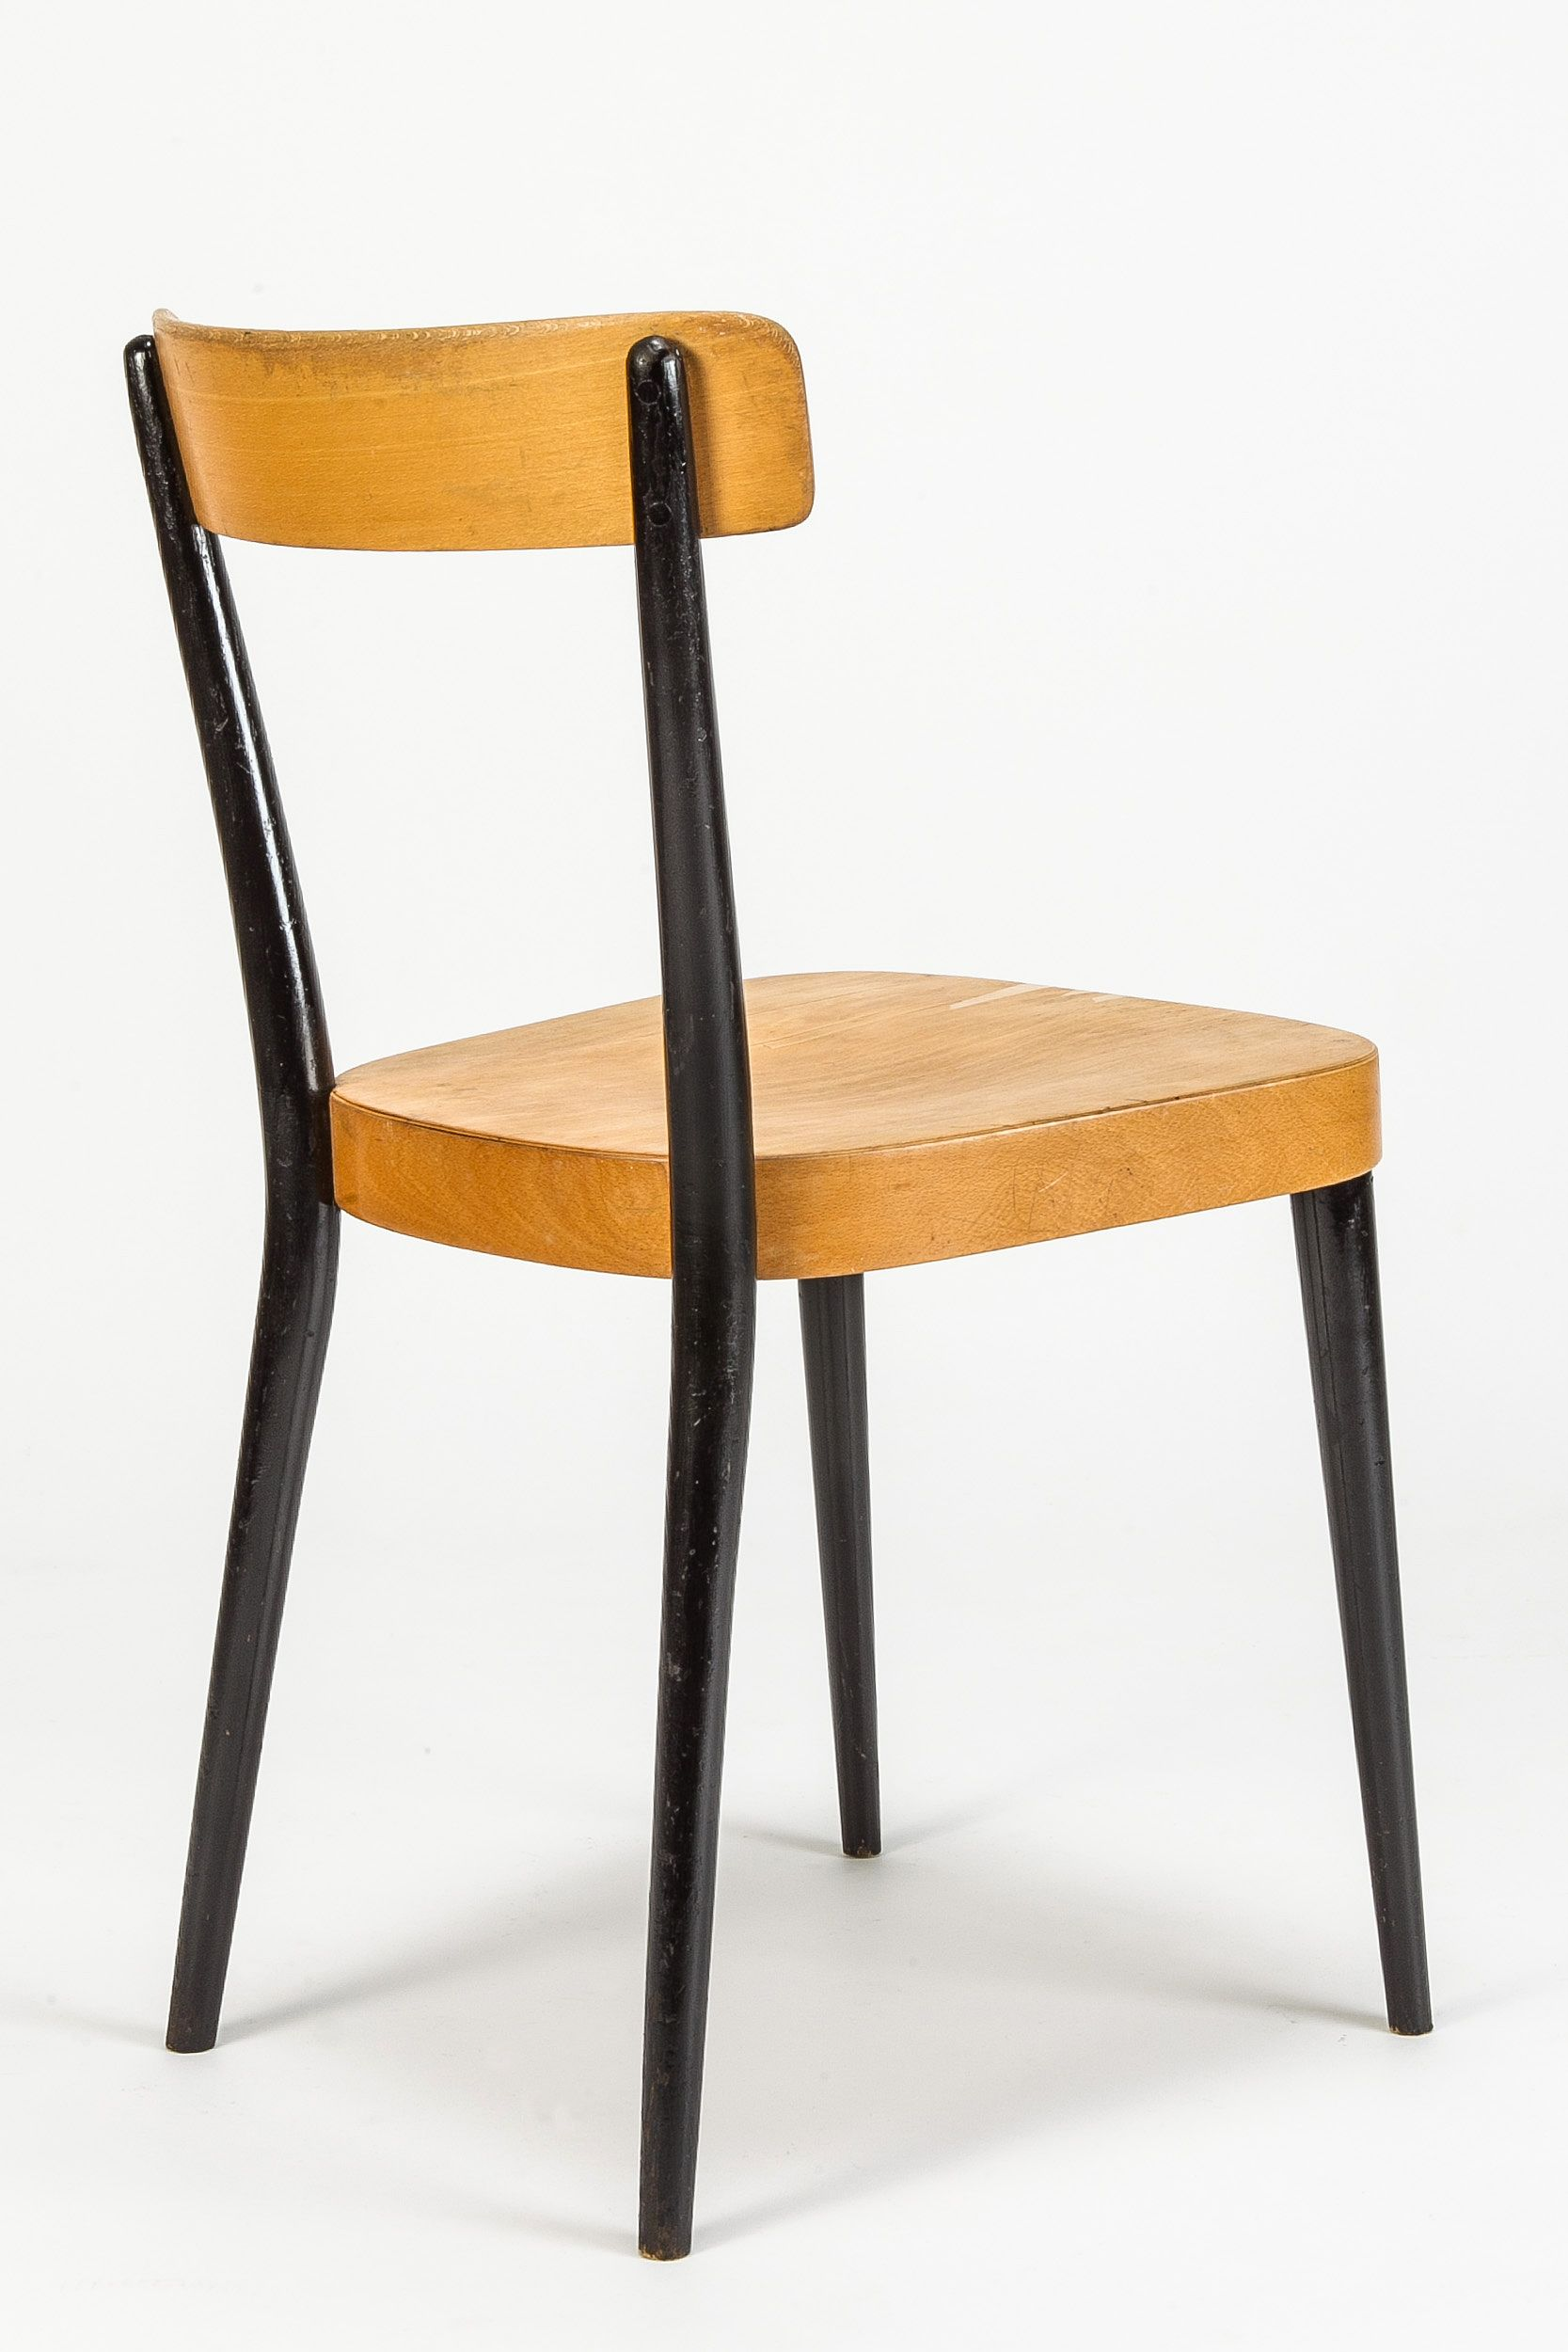 1 Werner Max Moser Chair Okay Art Chairs Only